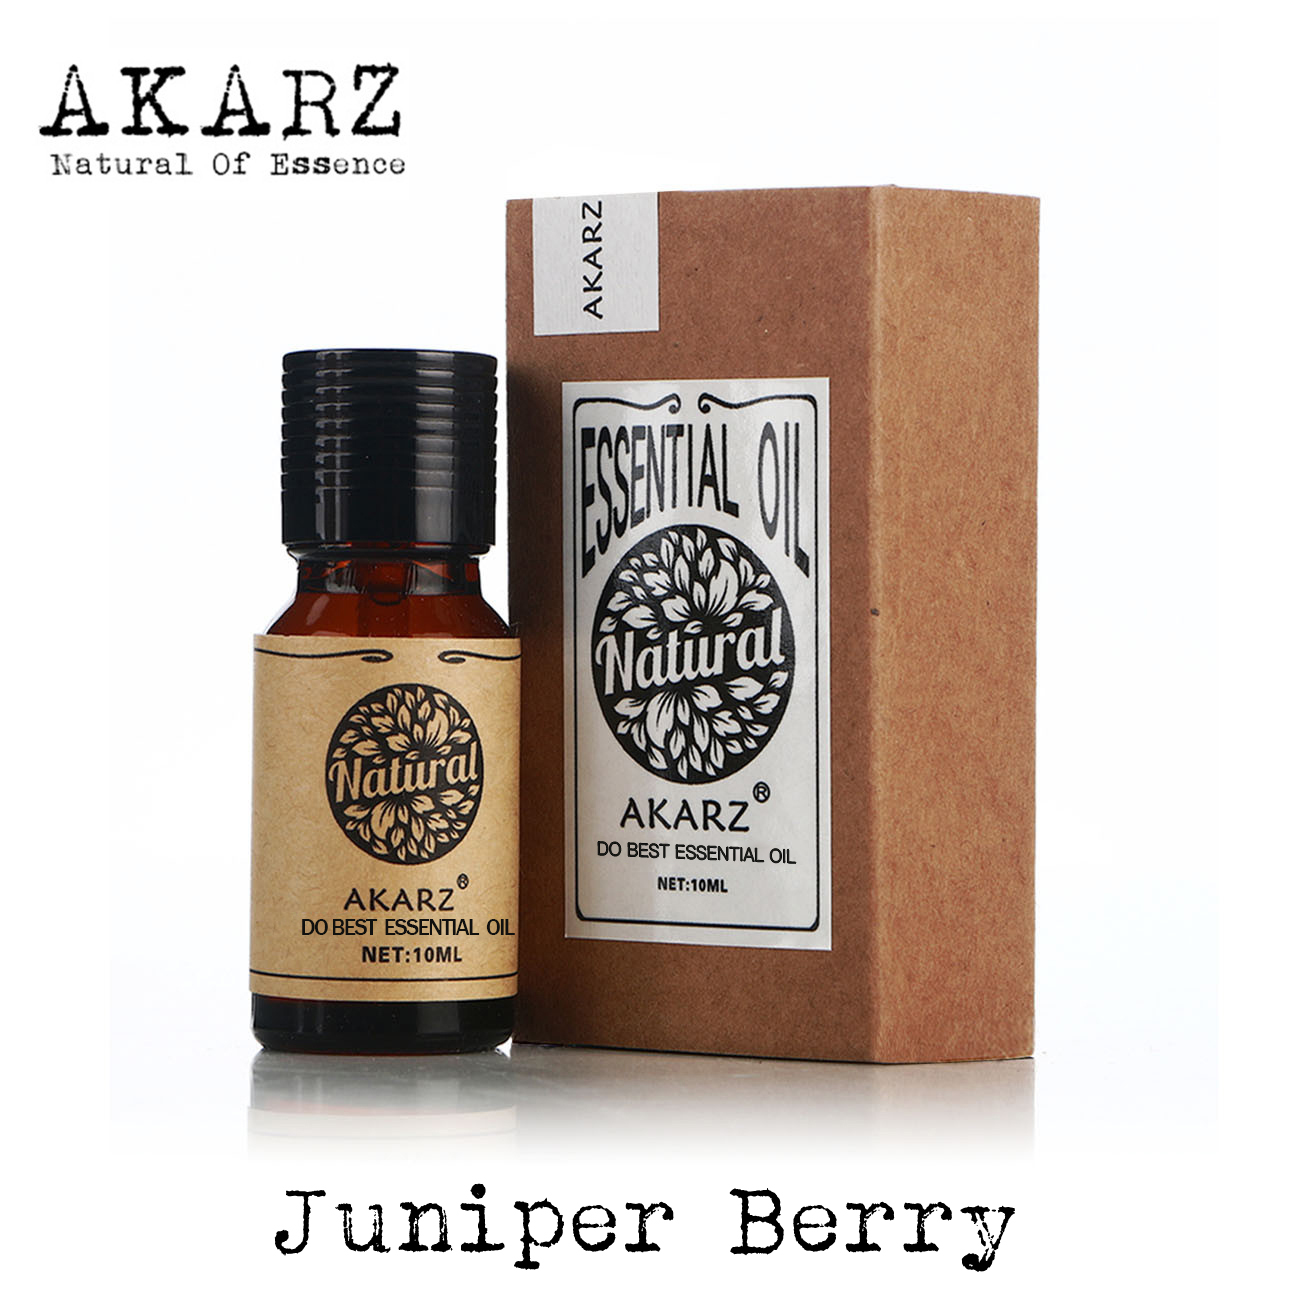 AKARZ Famous Brand Natural Juniper Berry Essential Oil Treatment Of Acne Skin Inflammation Juniper Berry Oil